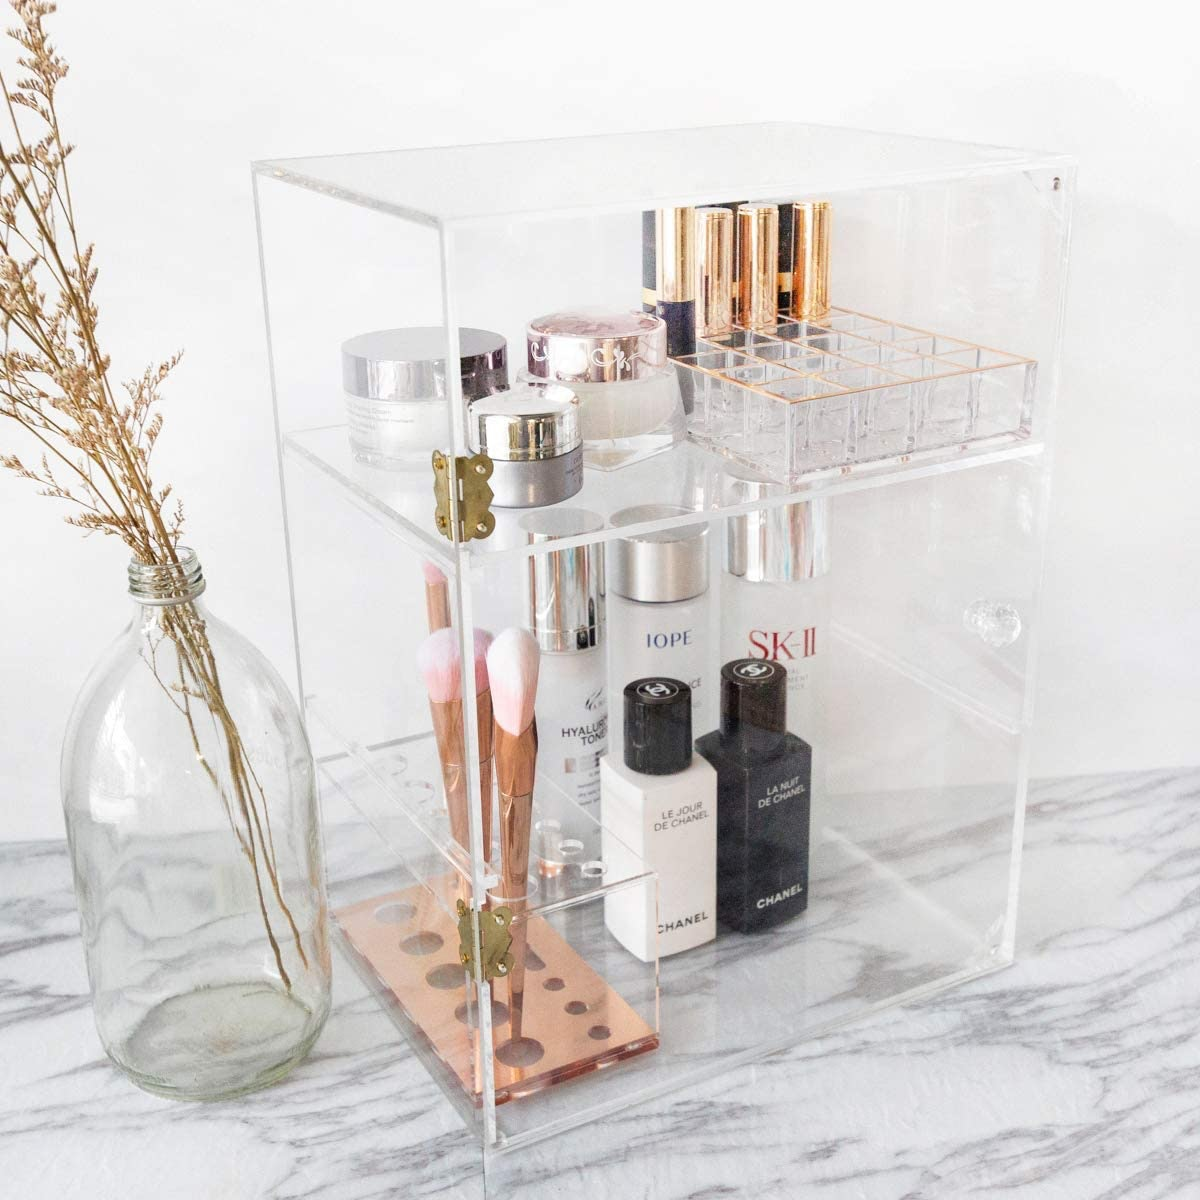 Clear acrylic beauty organizers, like the ones from Moosy Life, typically are available for $20 or l...